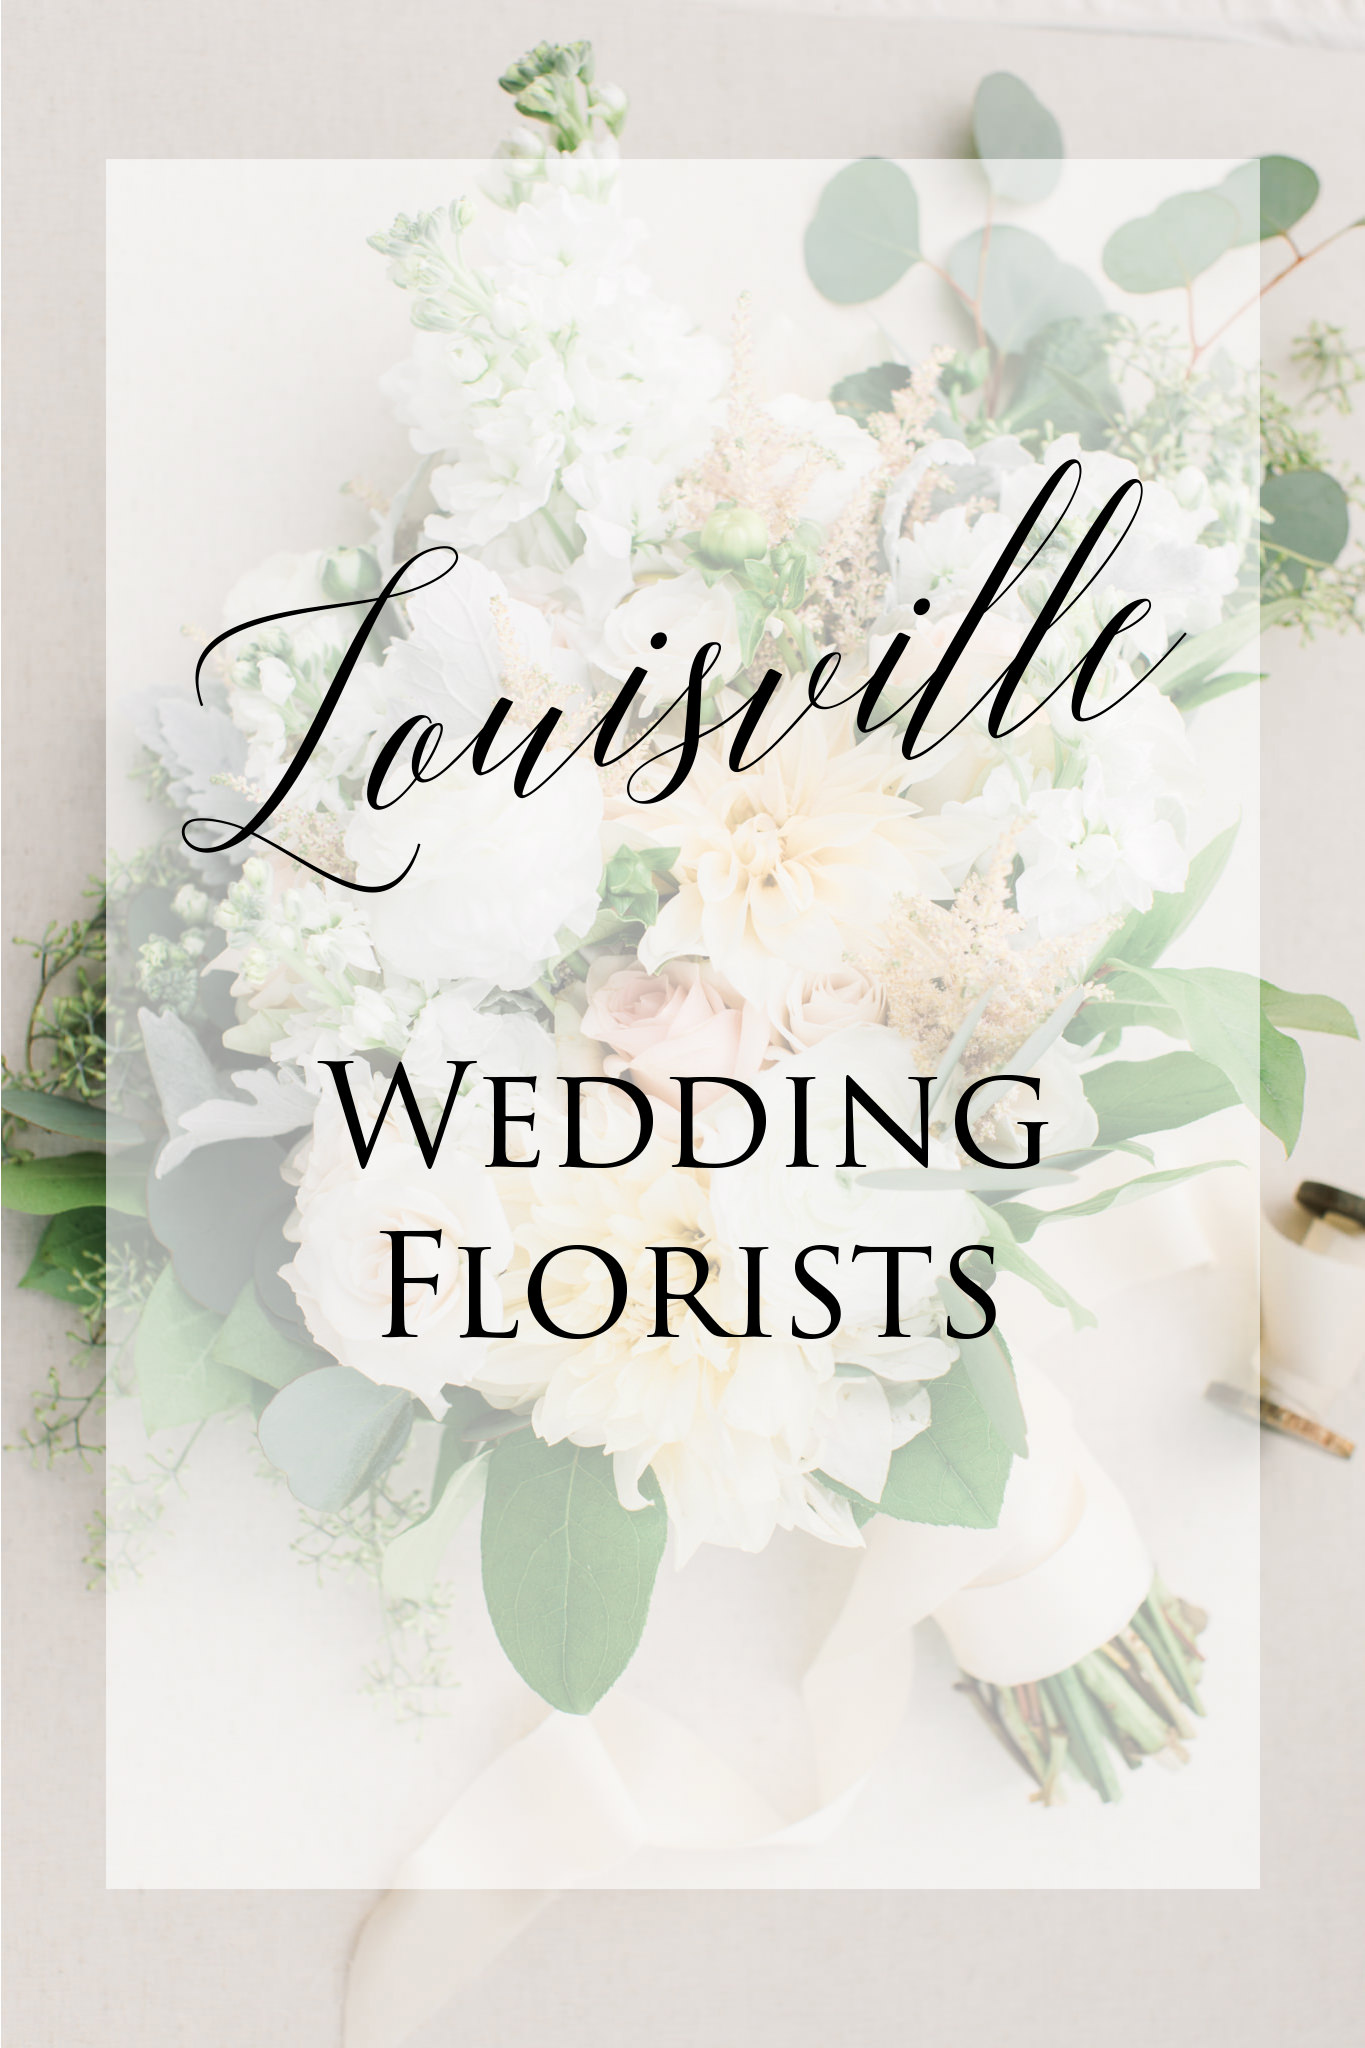 Louisville-Wedding-Florists.jpg